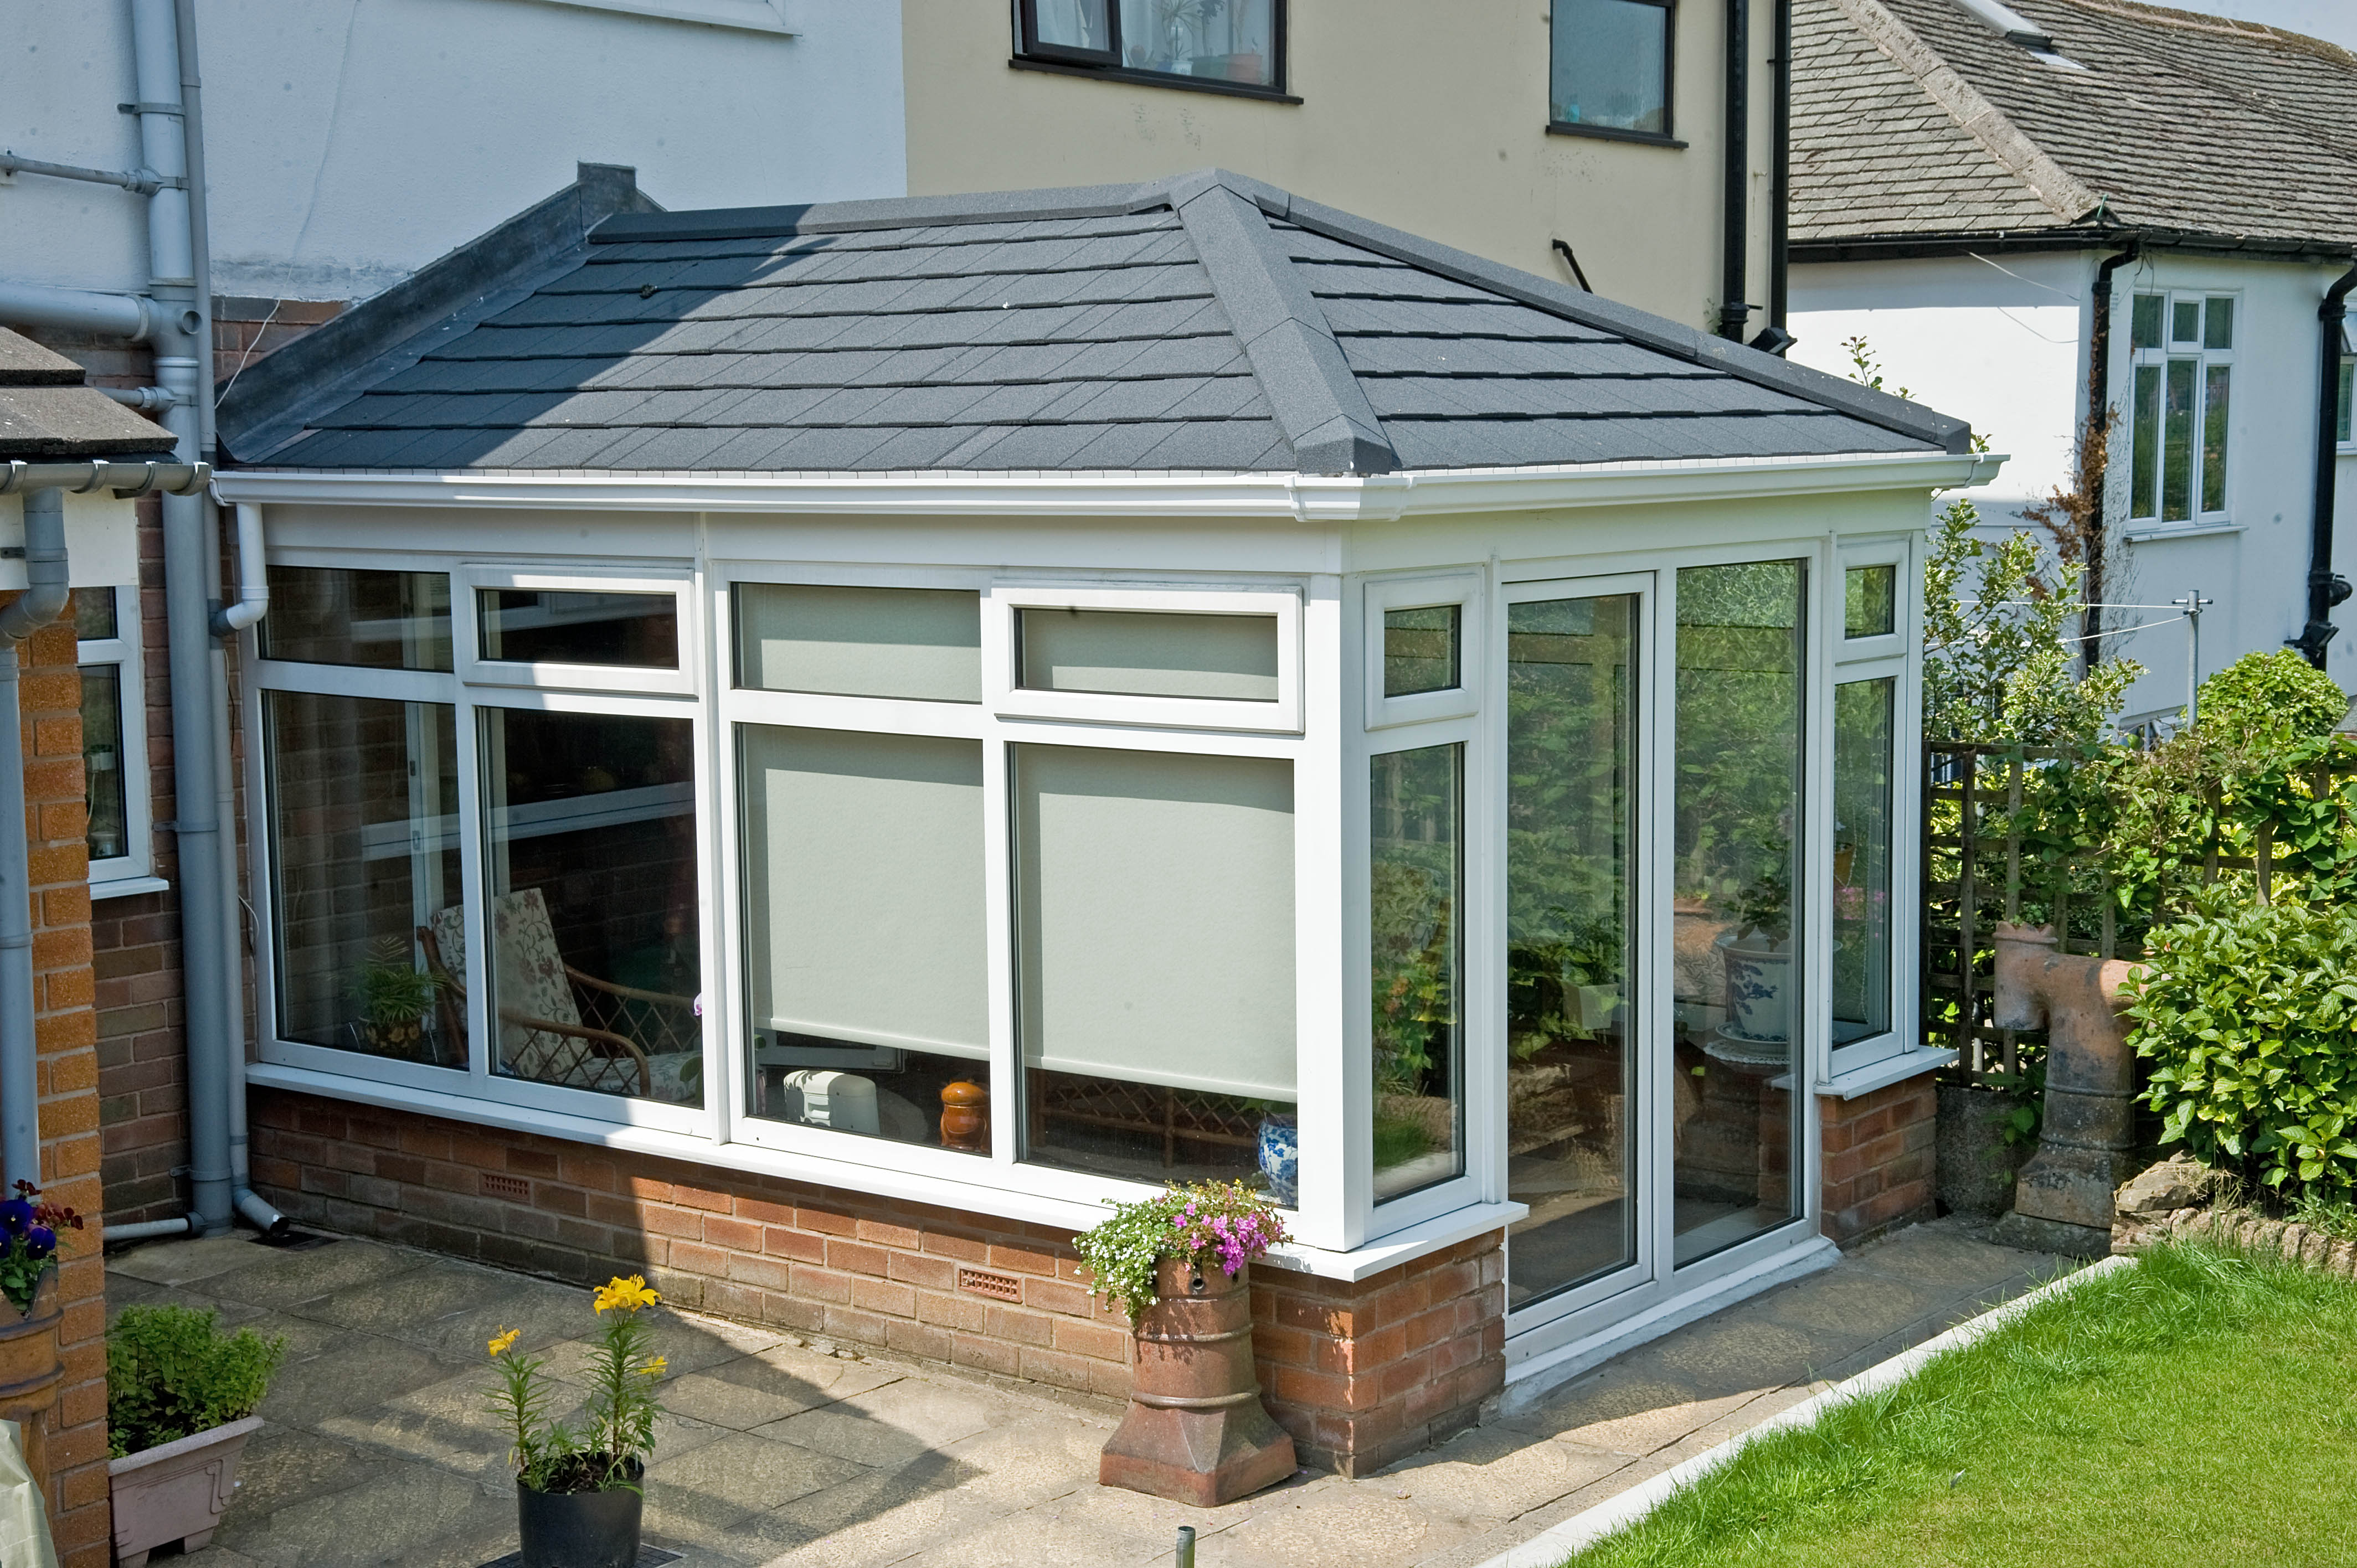 Warm Roof Solutions - Halifax, West Yorkshire HX3 6SN - 01422 416292 | ShowMeLocal.com